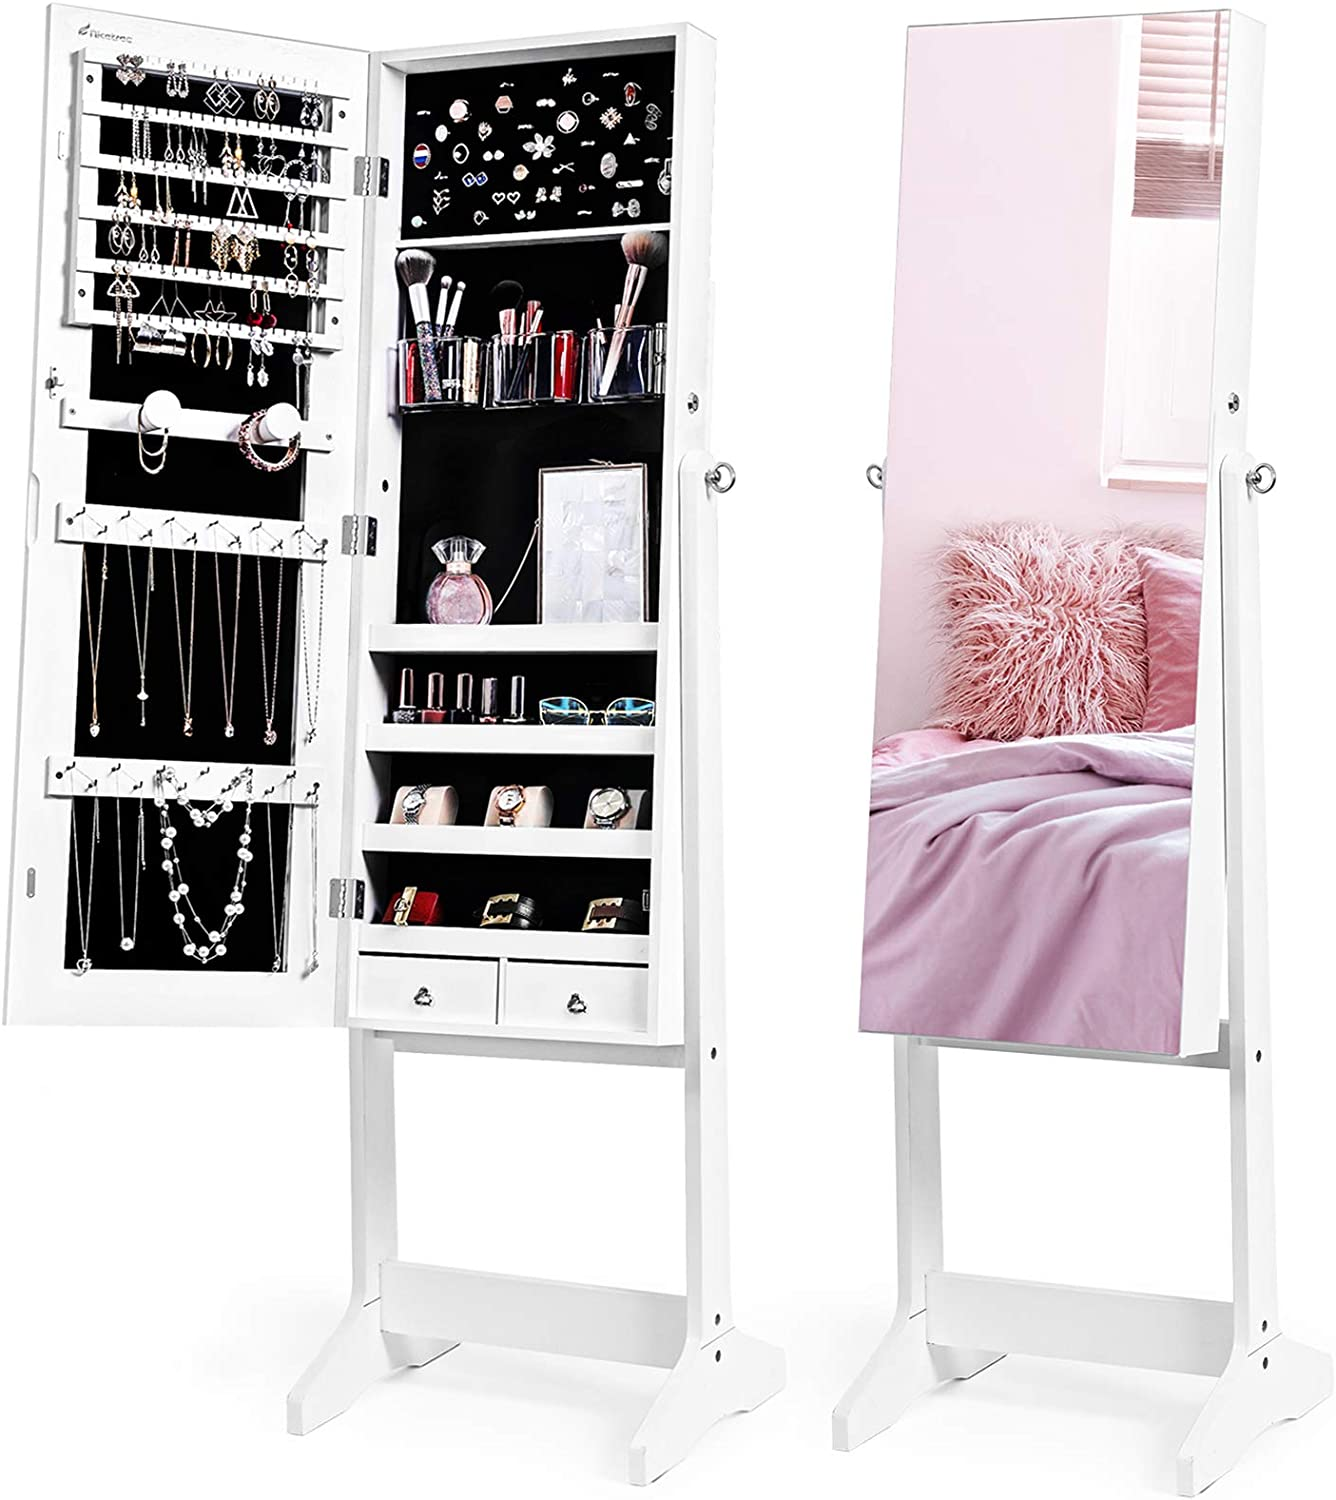 Nicetree Jewelry Cabinet with Full-Length Mirror, Standing Lockable Jewelry Armoire Mirror Organizer, 3 Angel Adjustable, White : Clothing, Shoes & Jewelry